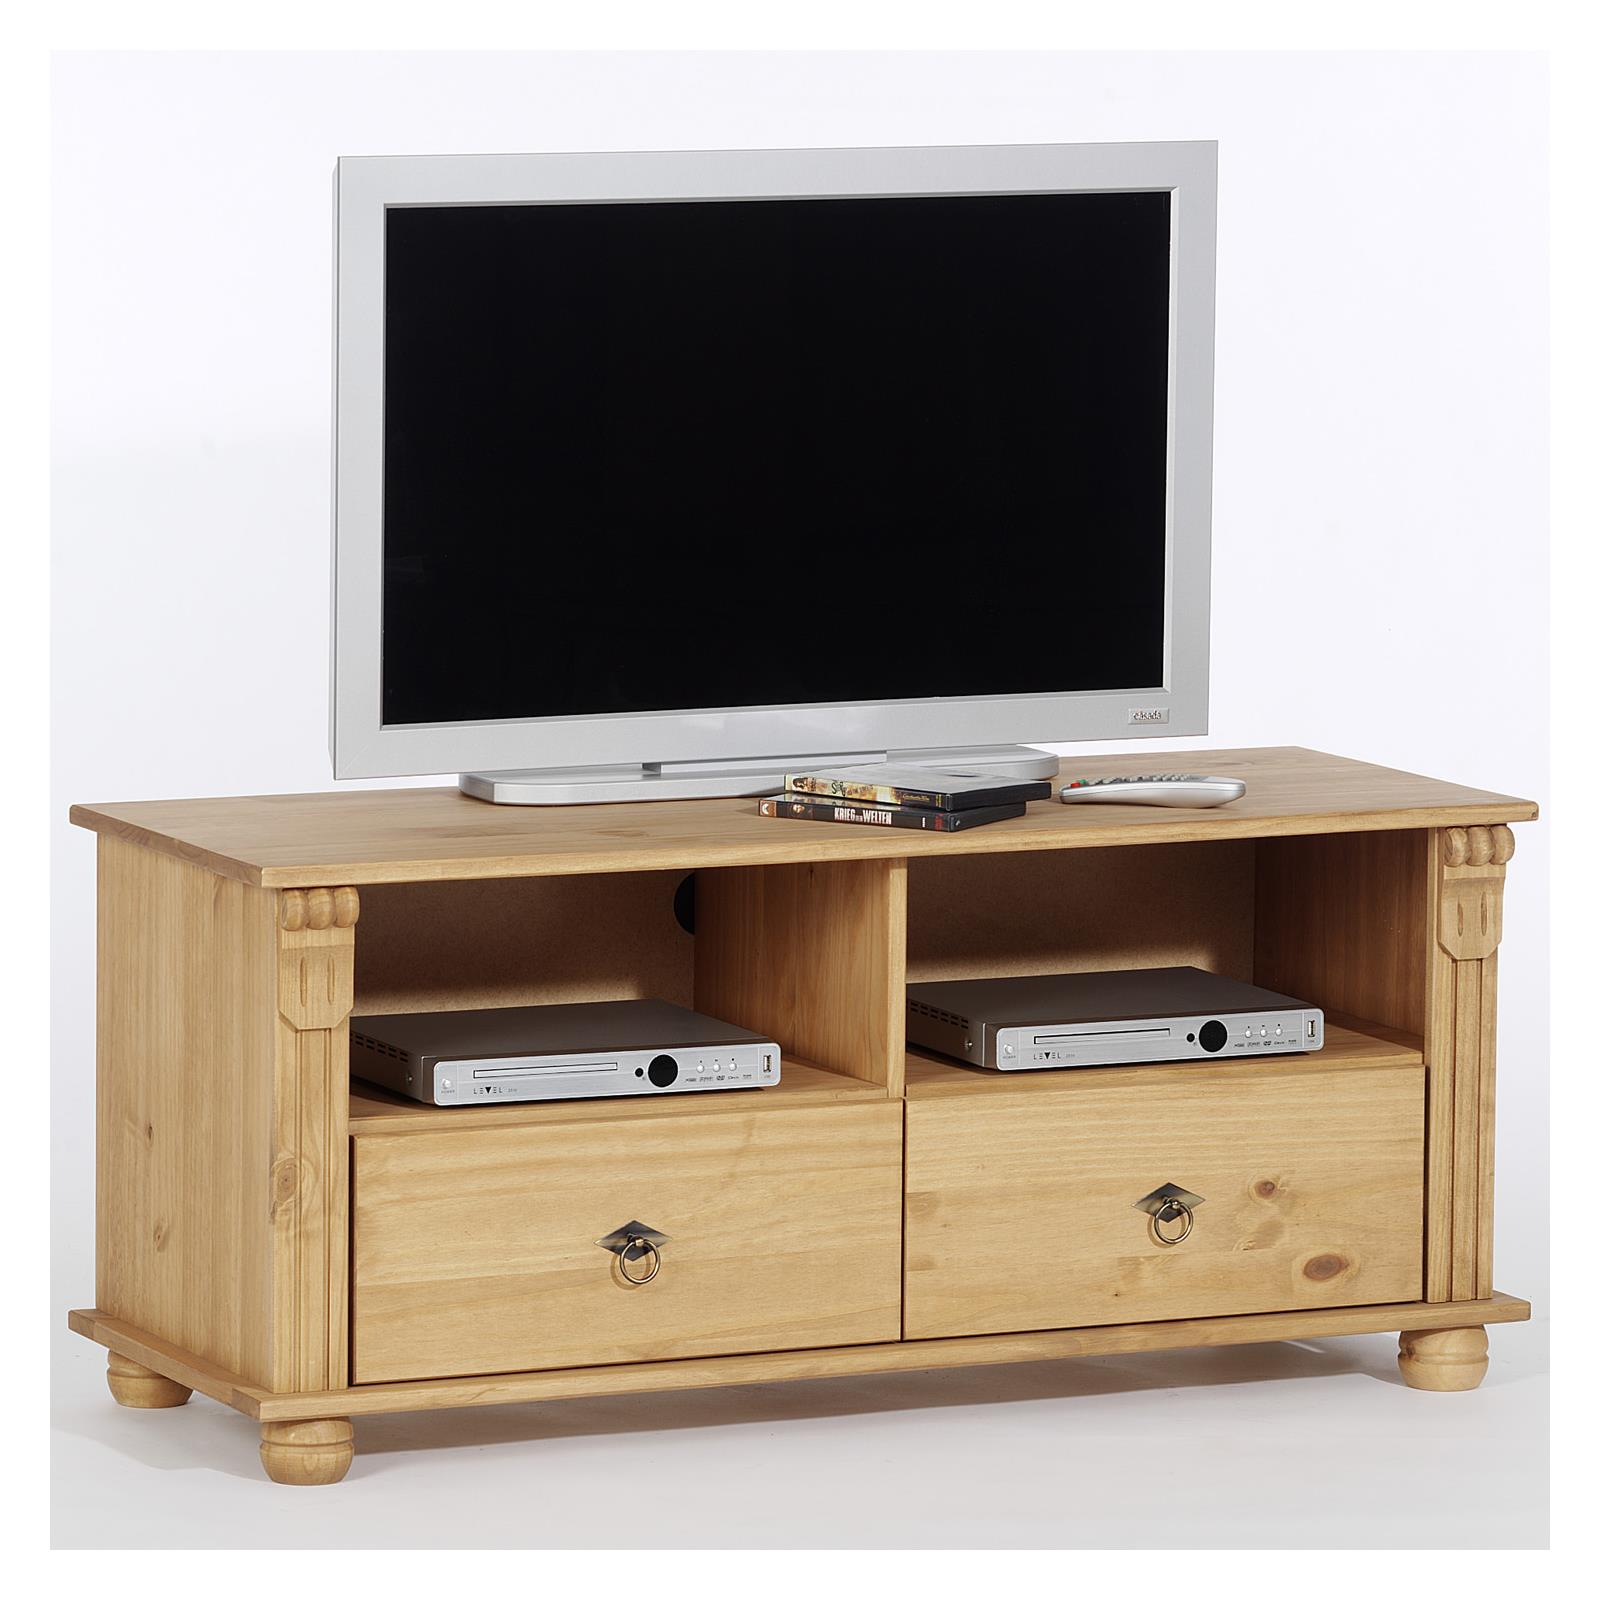 lowboard tv m bel phonom bel tv rack medienm bel hifi tisch phonotisch kiefer eur 120 00. Black Bedroom Furniture Sets. Home Design Ideas